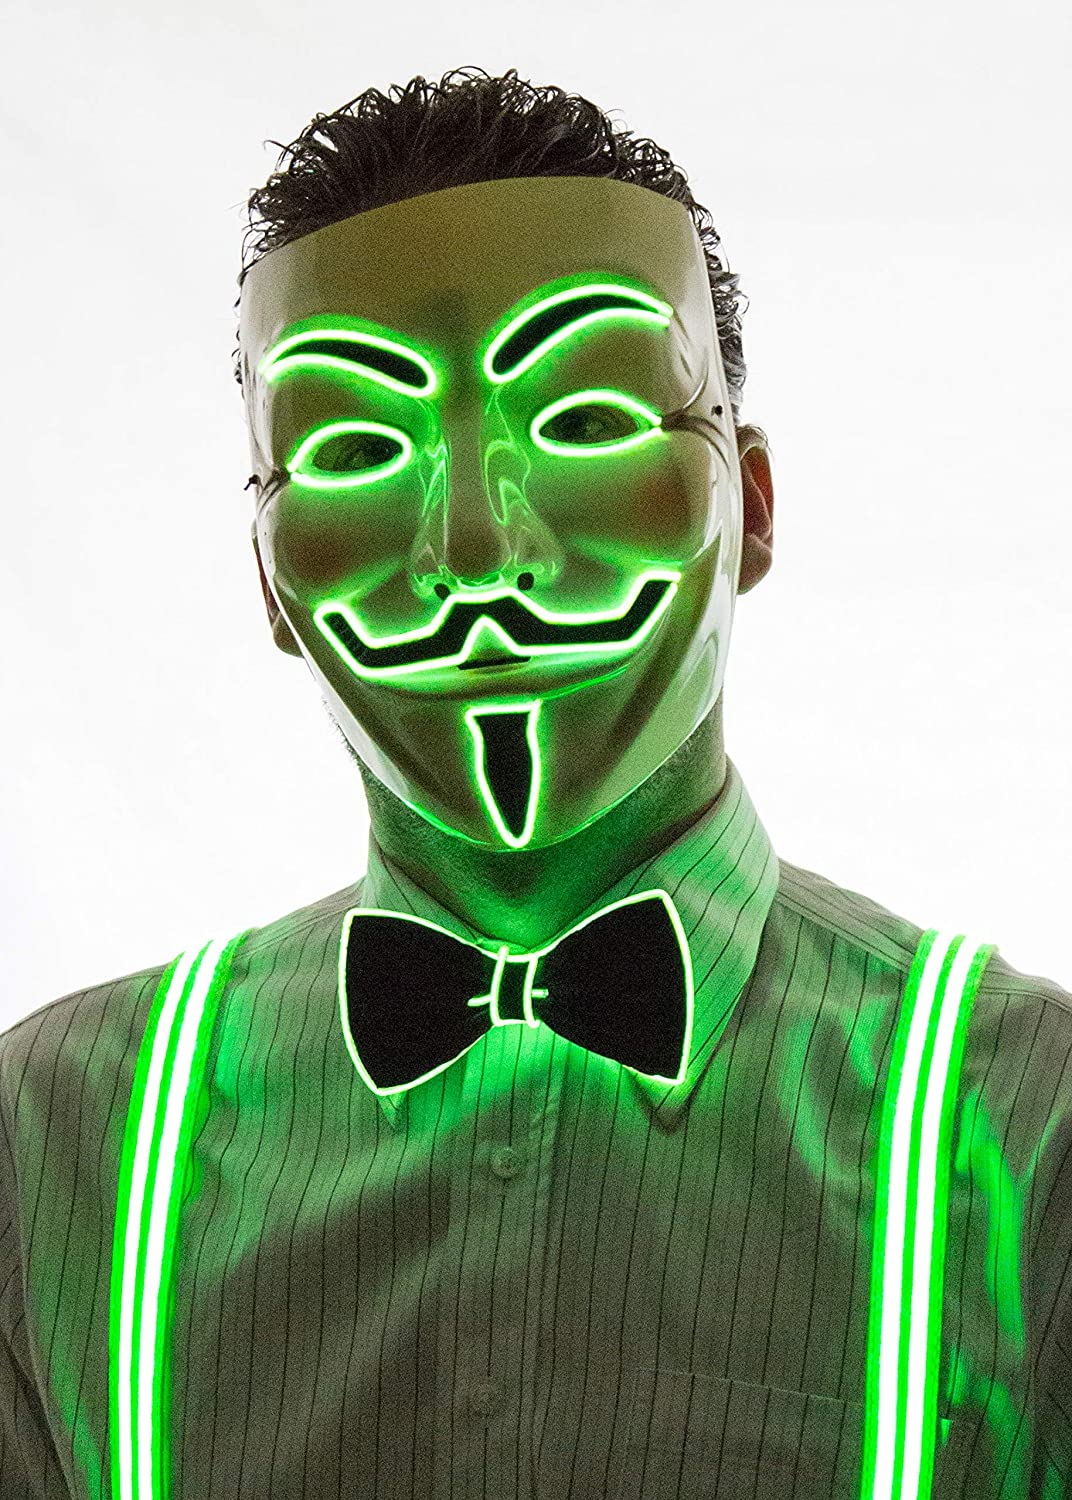 Neon Nightlife Light Up V for Vendetta Anonymous LED mask Guy Fawkes Mask One Size